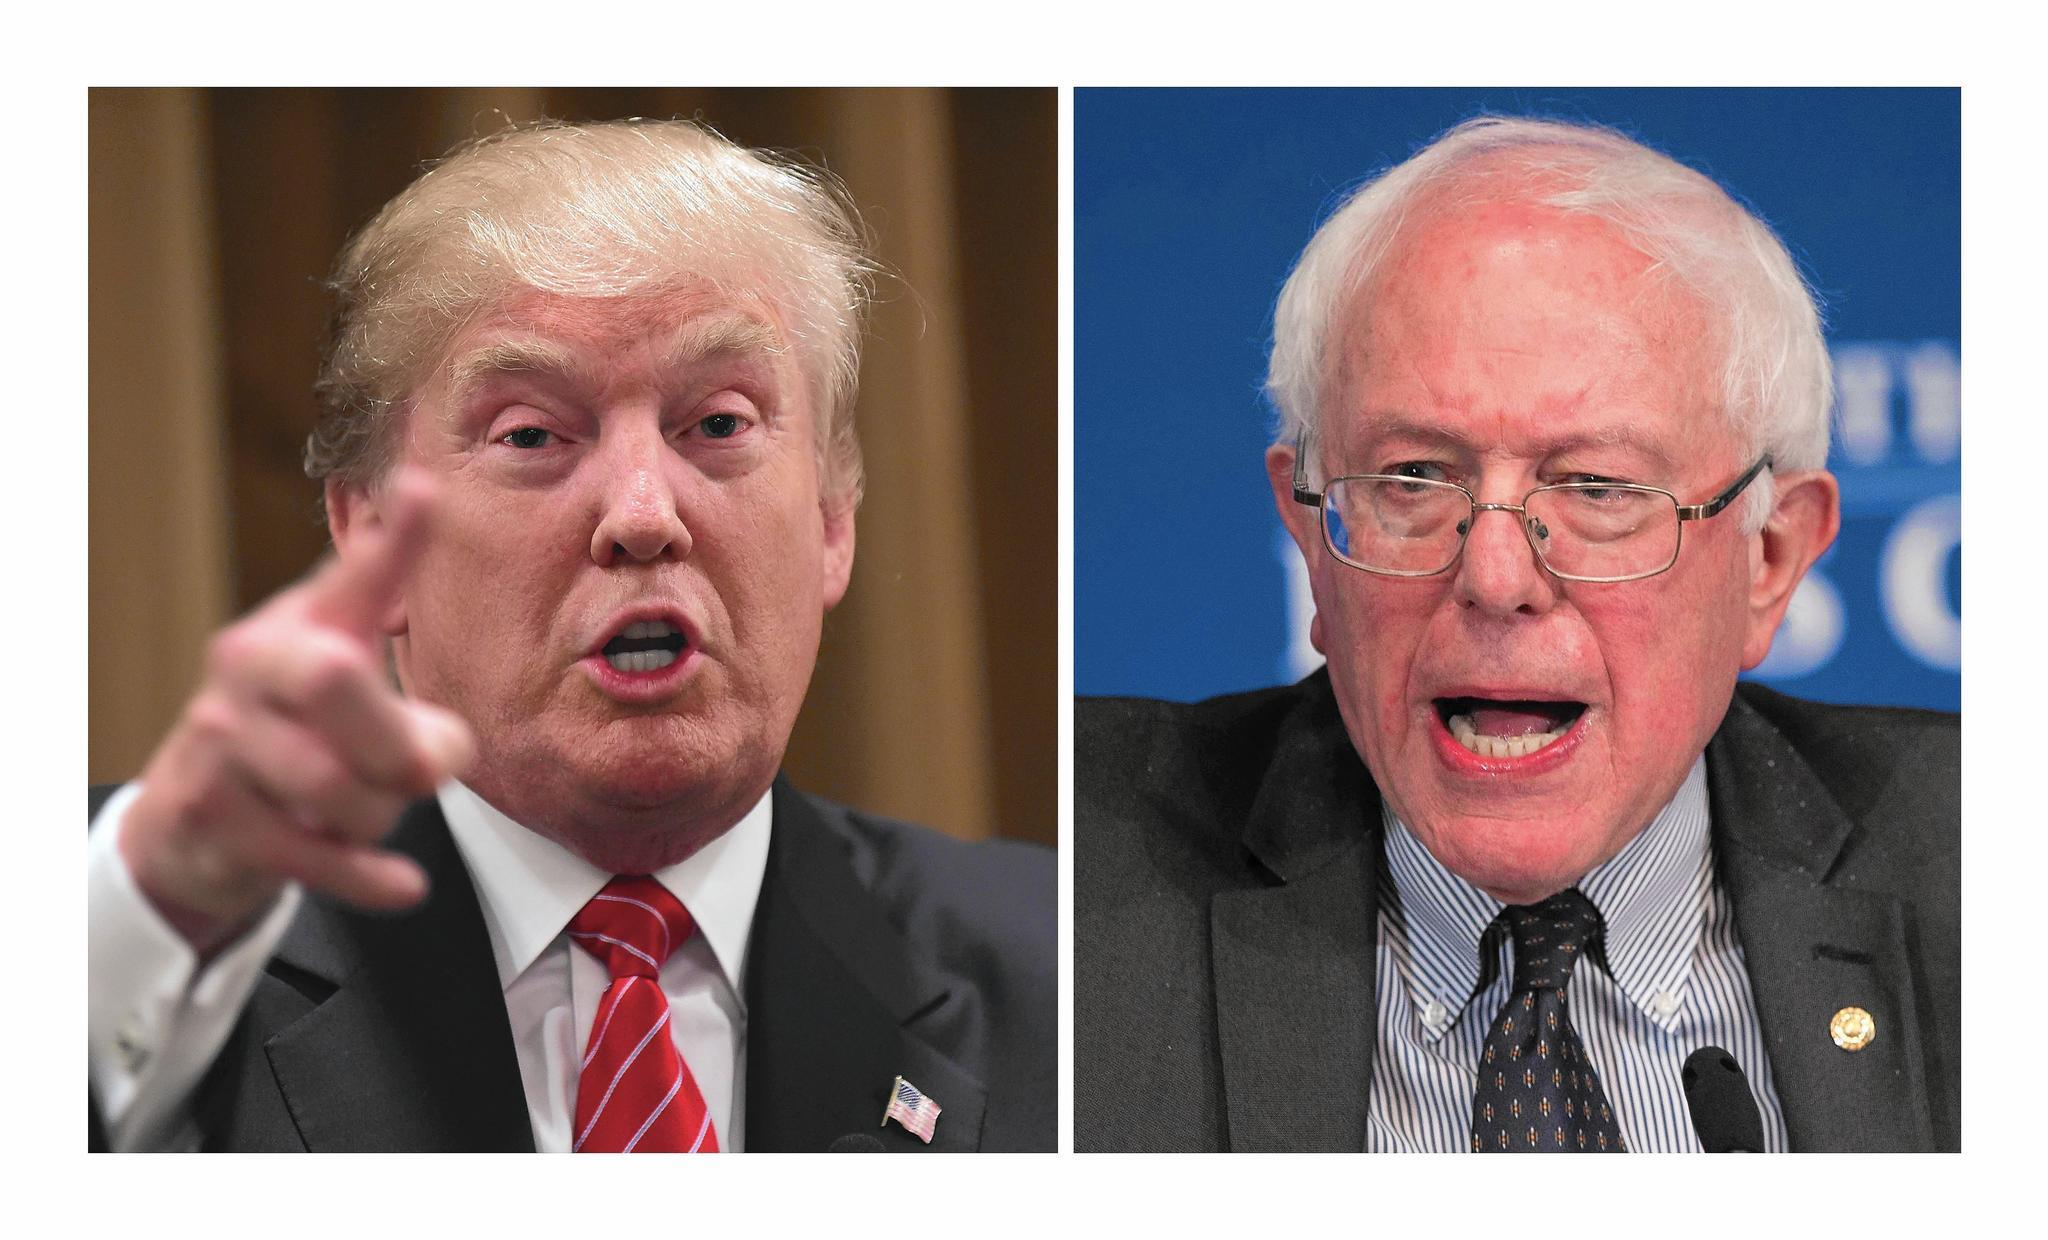 What Bernie offers Trumpites: Sanders' message resonates in surprising ways with some of the president's fans